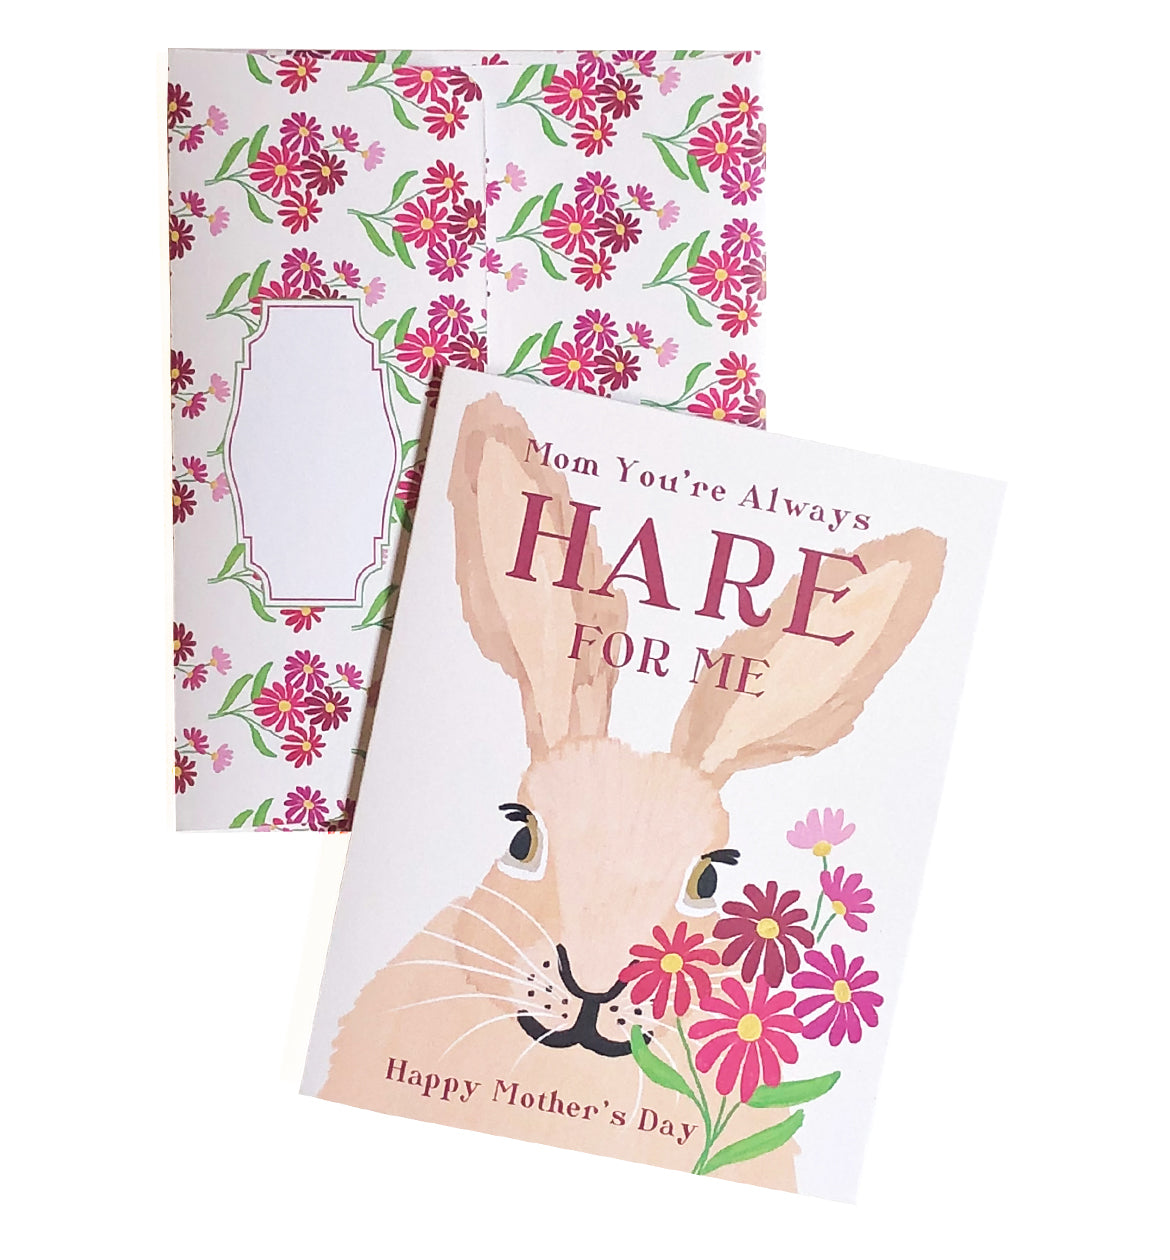 Mom You're Always Hare For Me (Happy Mother's Day)